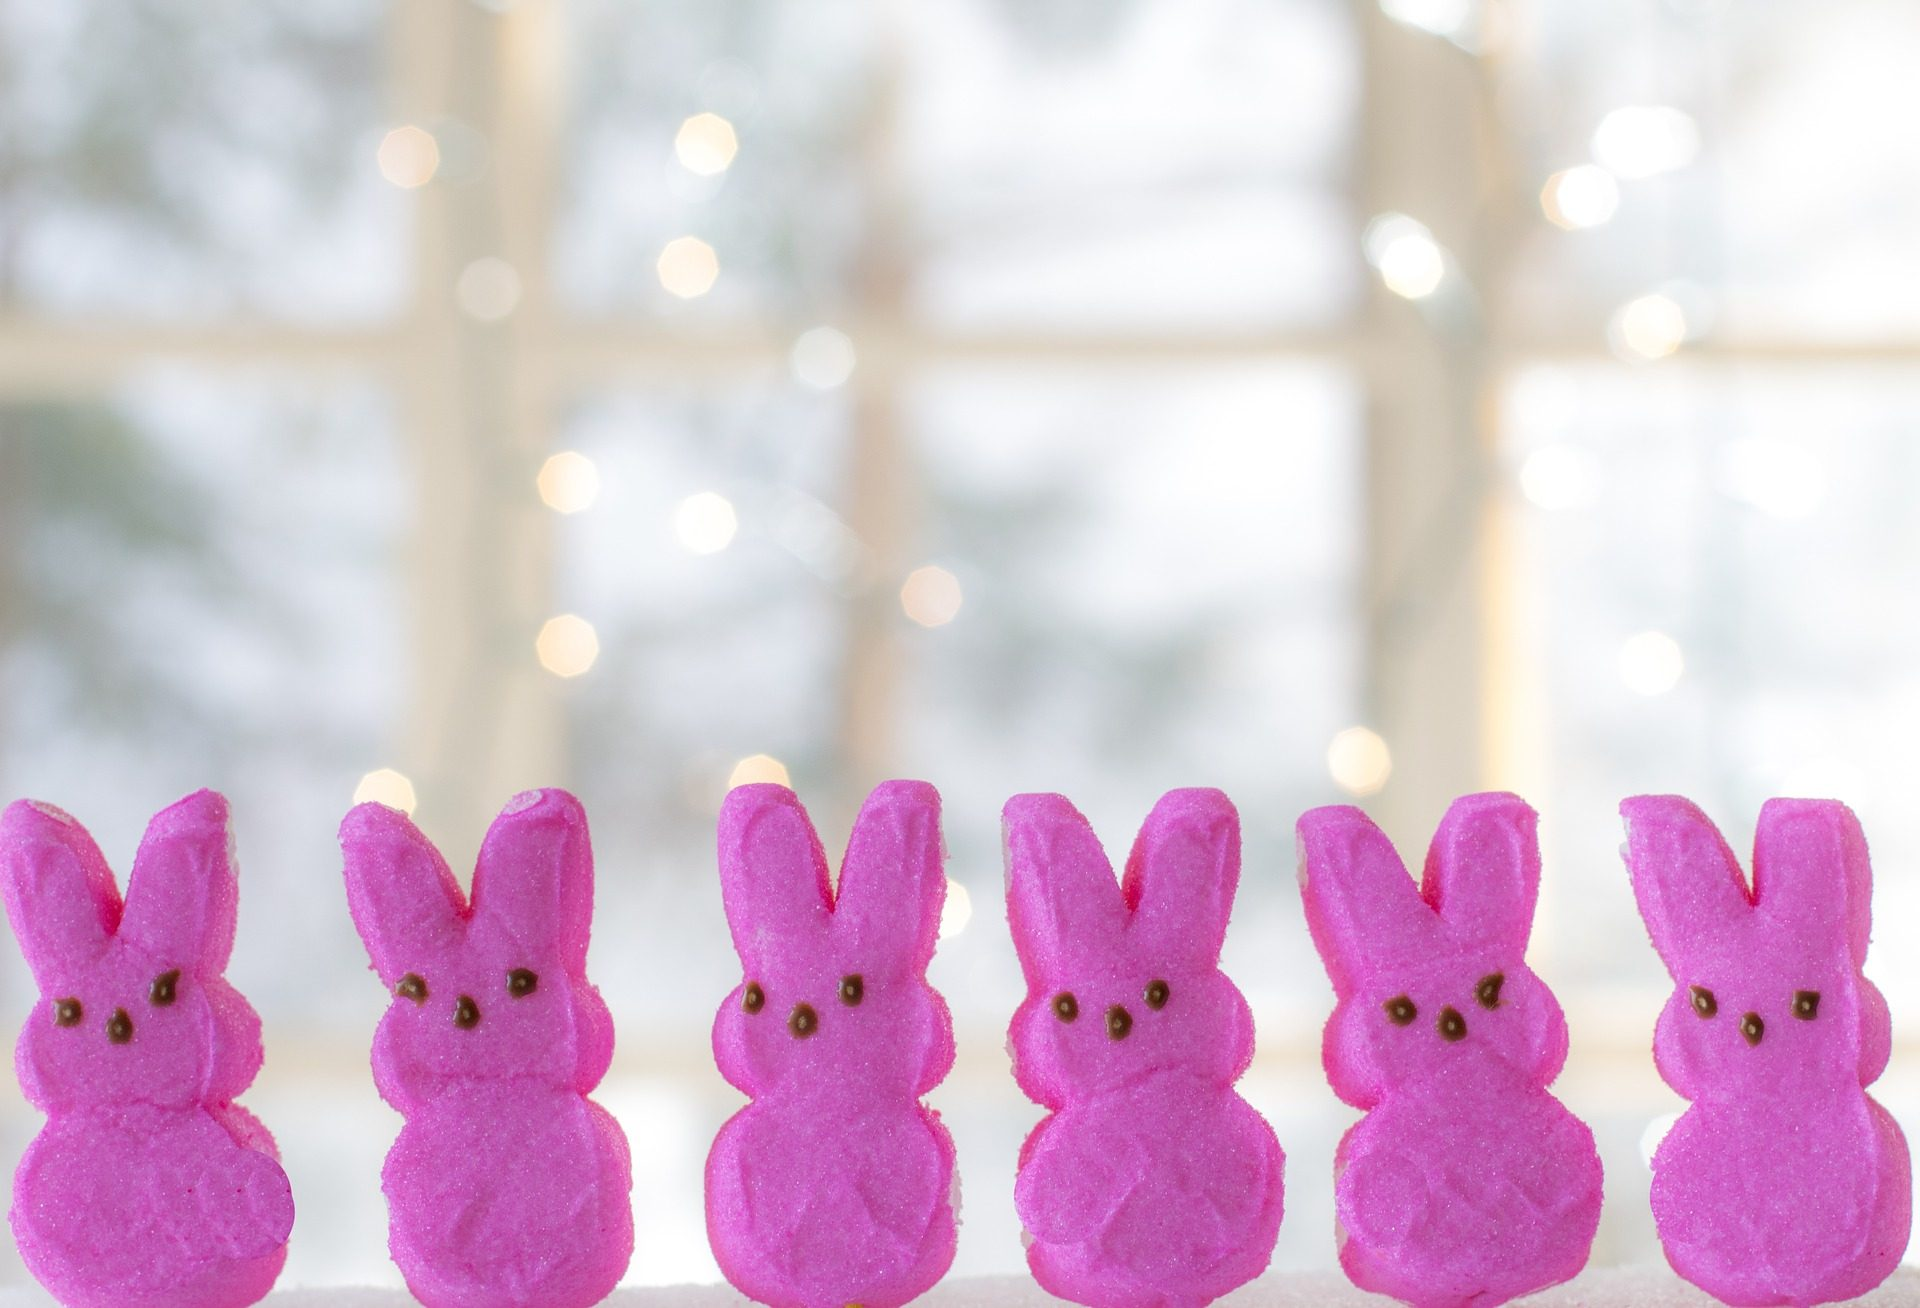 8 New Flavors of Peeps released (Including three mysteries)